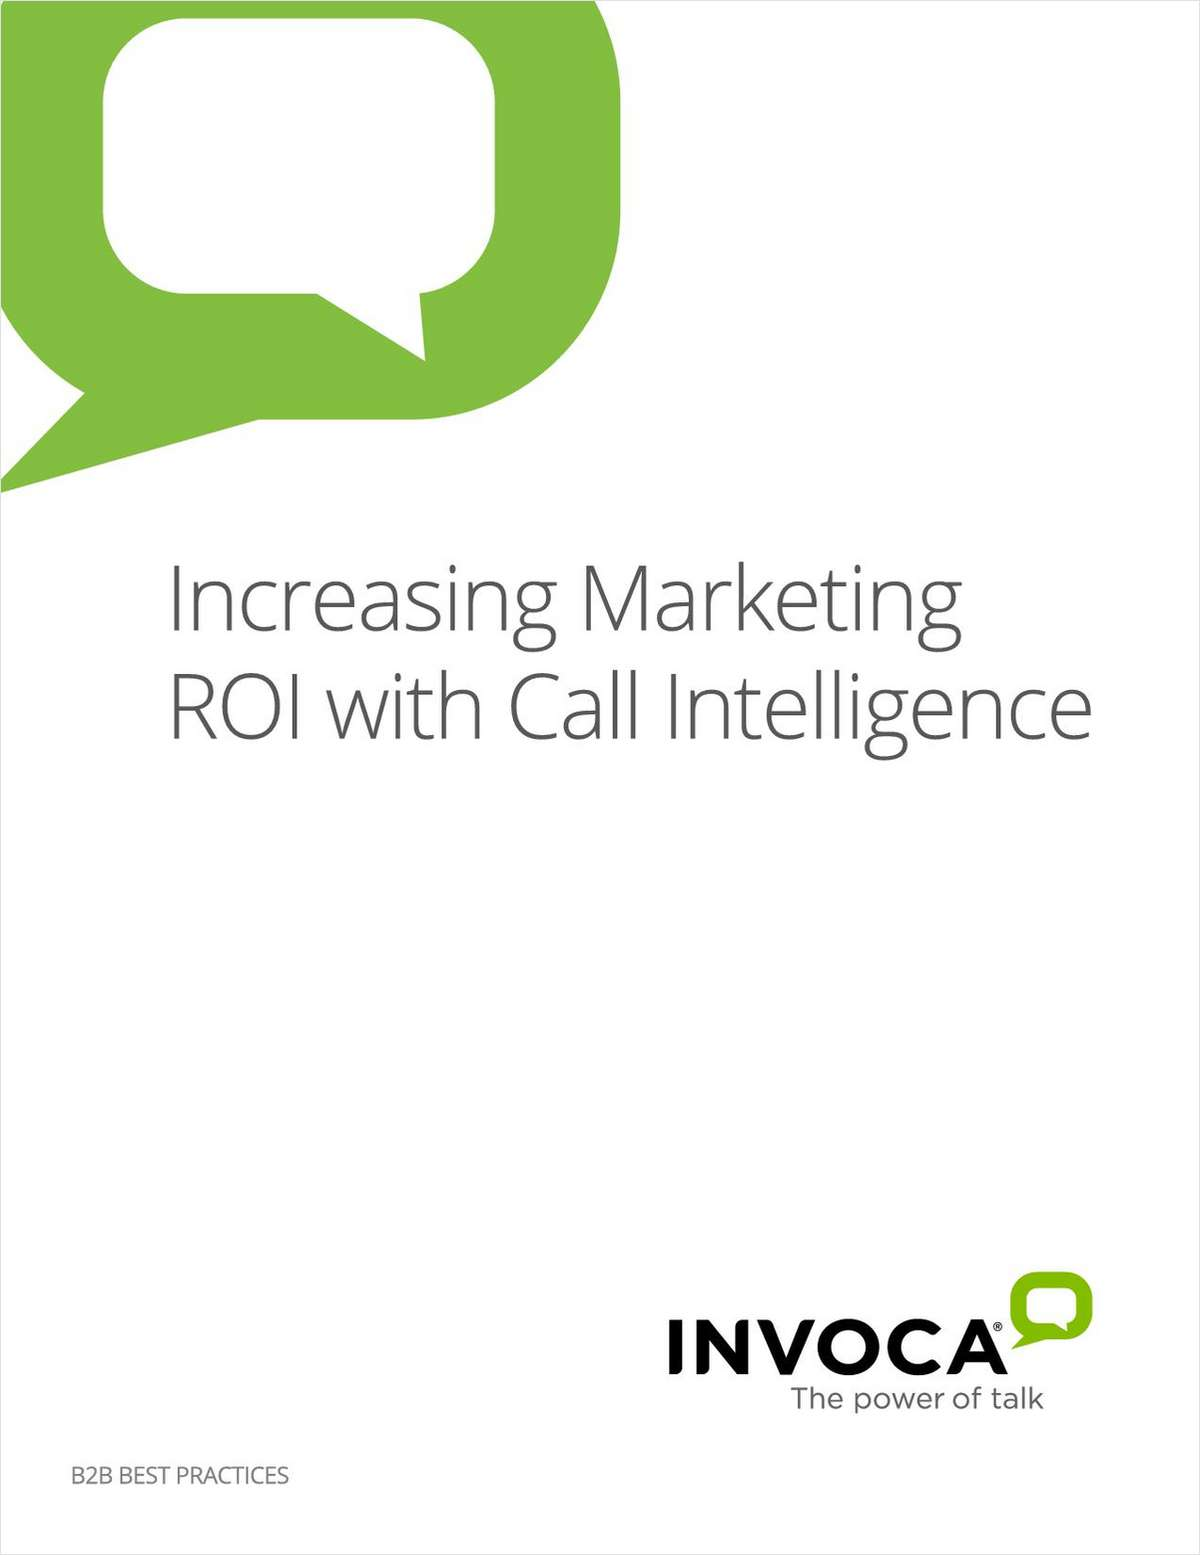 B2B Guide: Increasing Marketing ROI with Call Intelligence